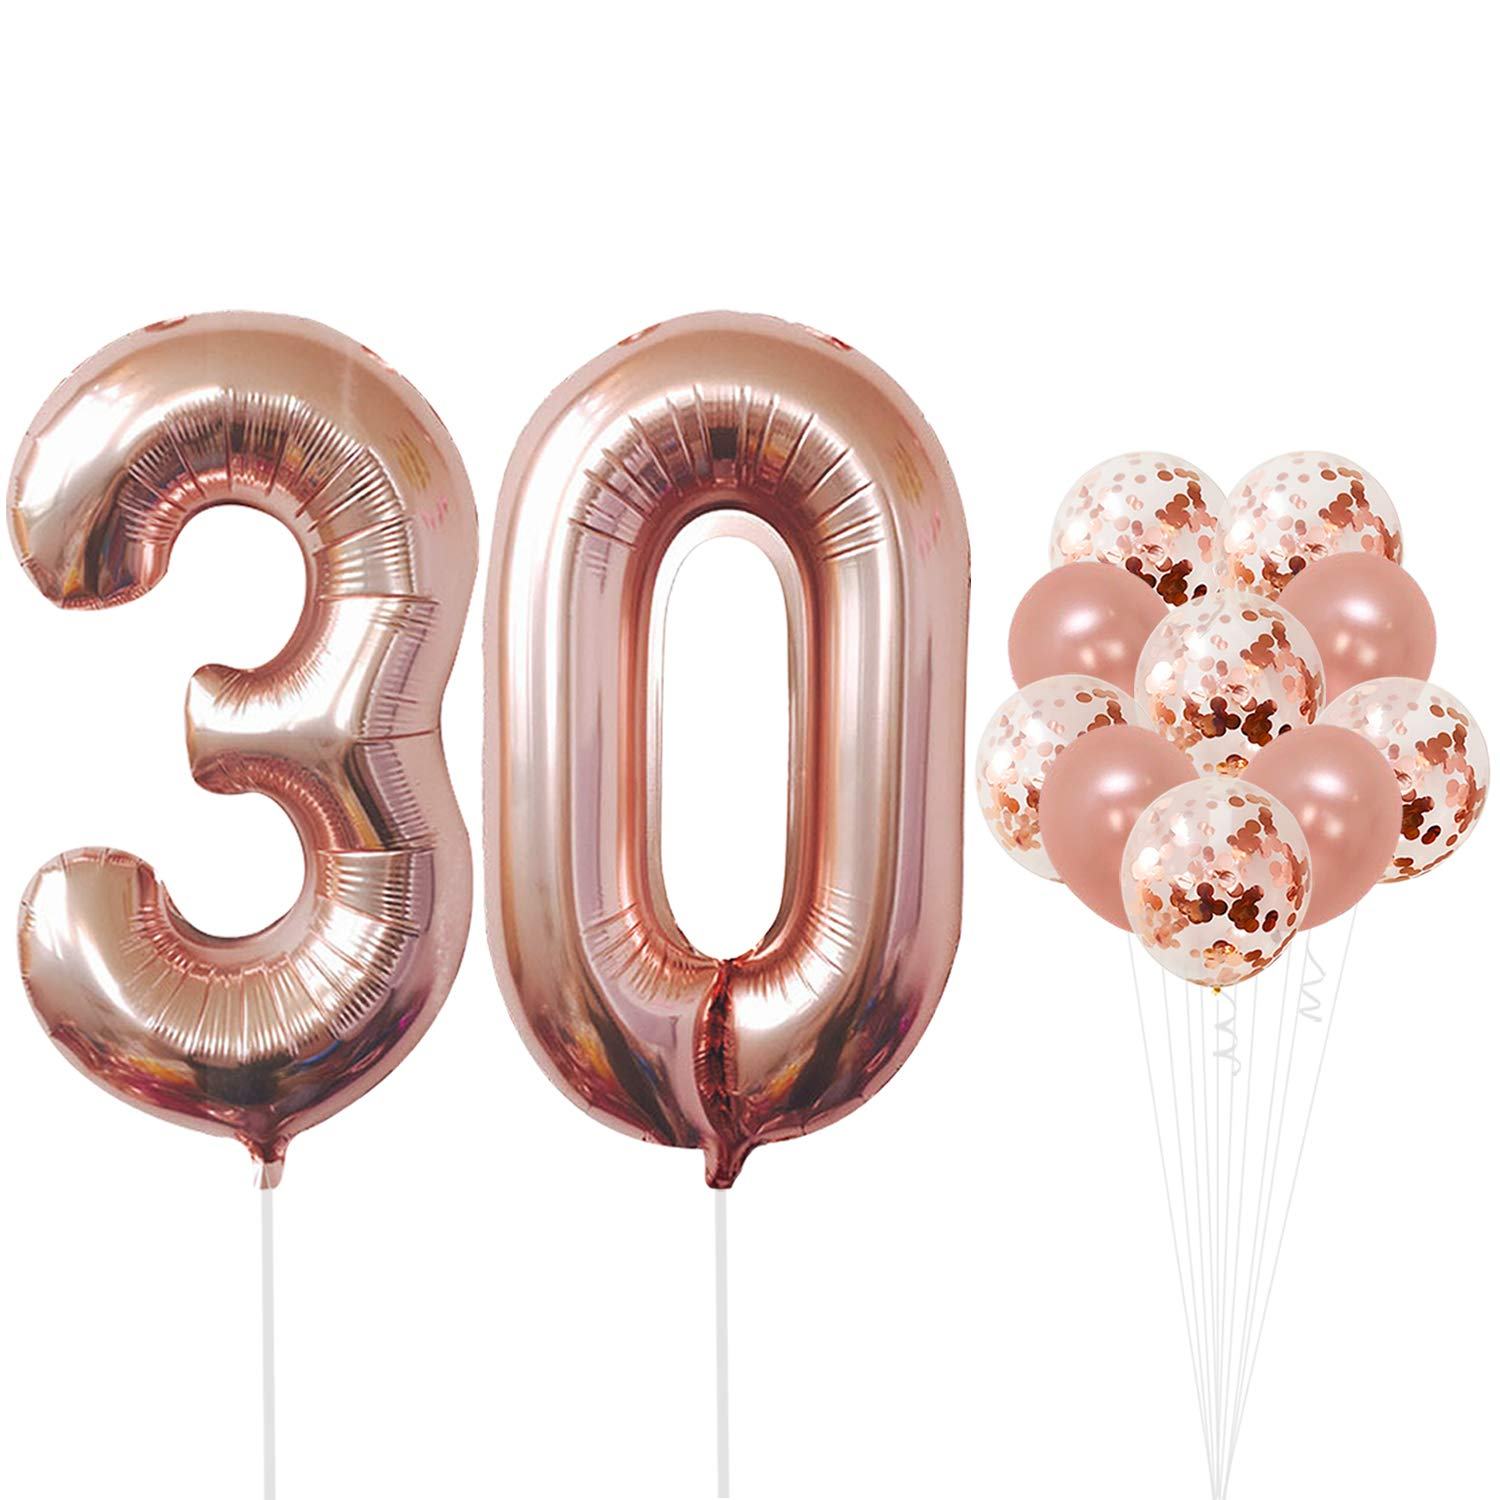 Rose Gold 30th Birthday Decorations Pack Of 21